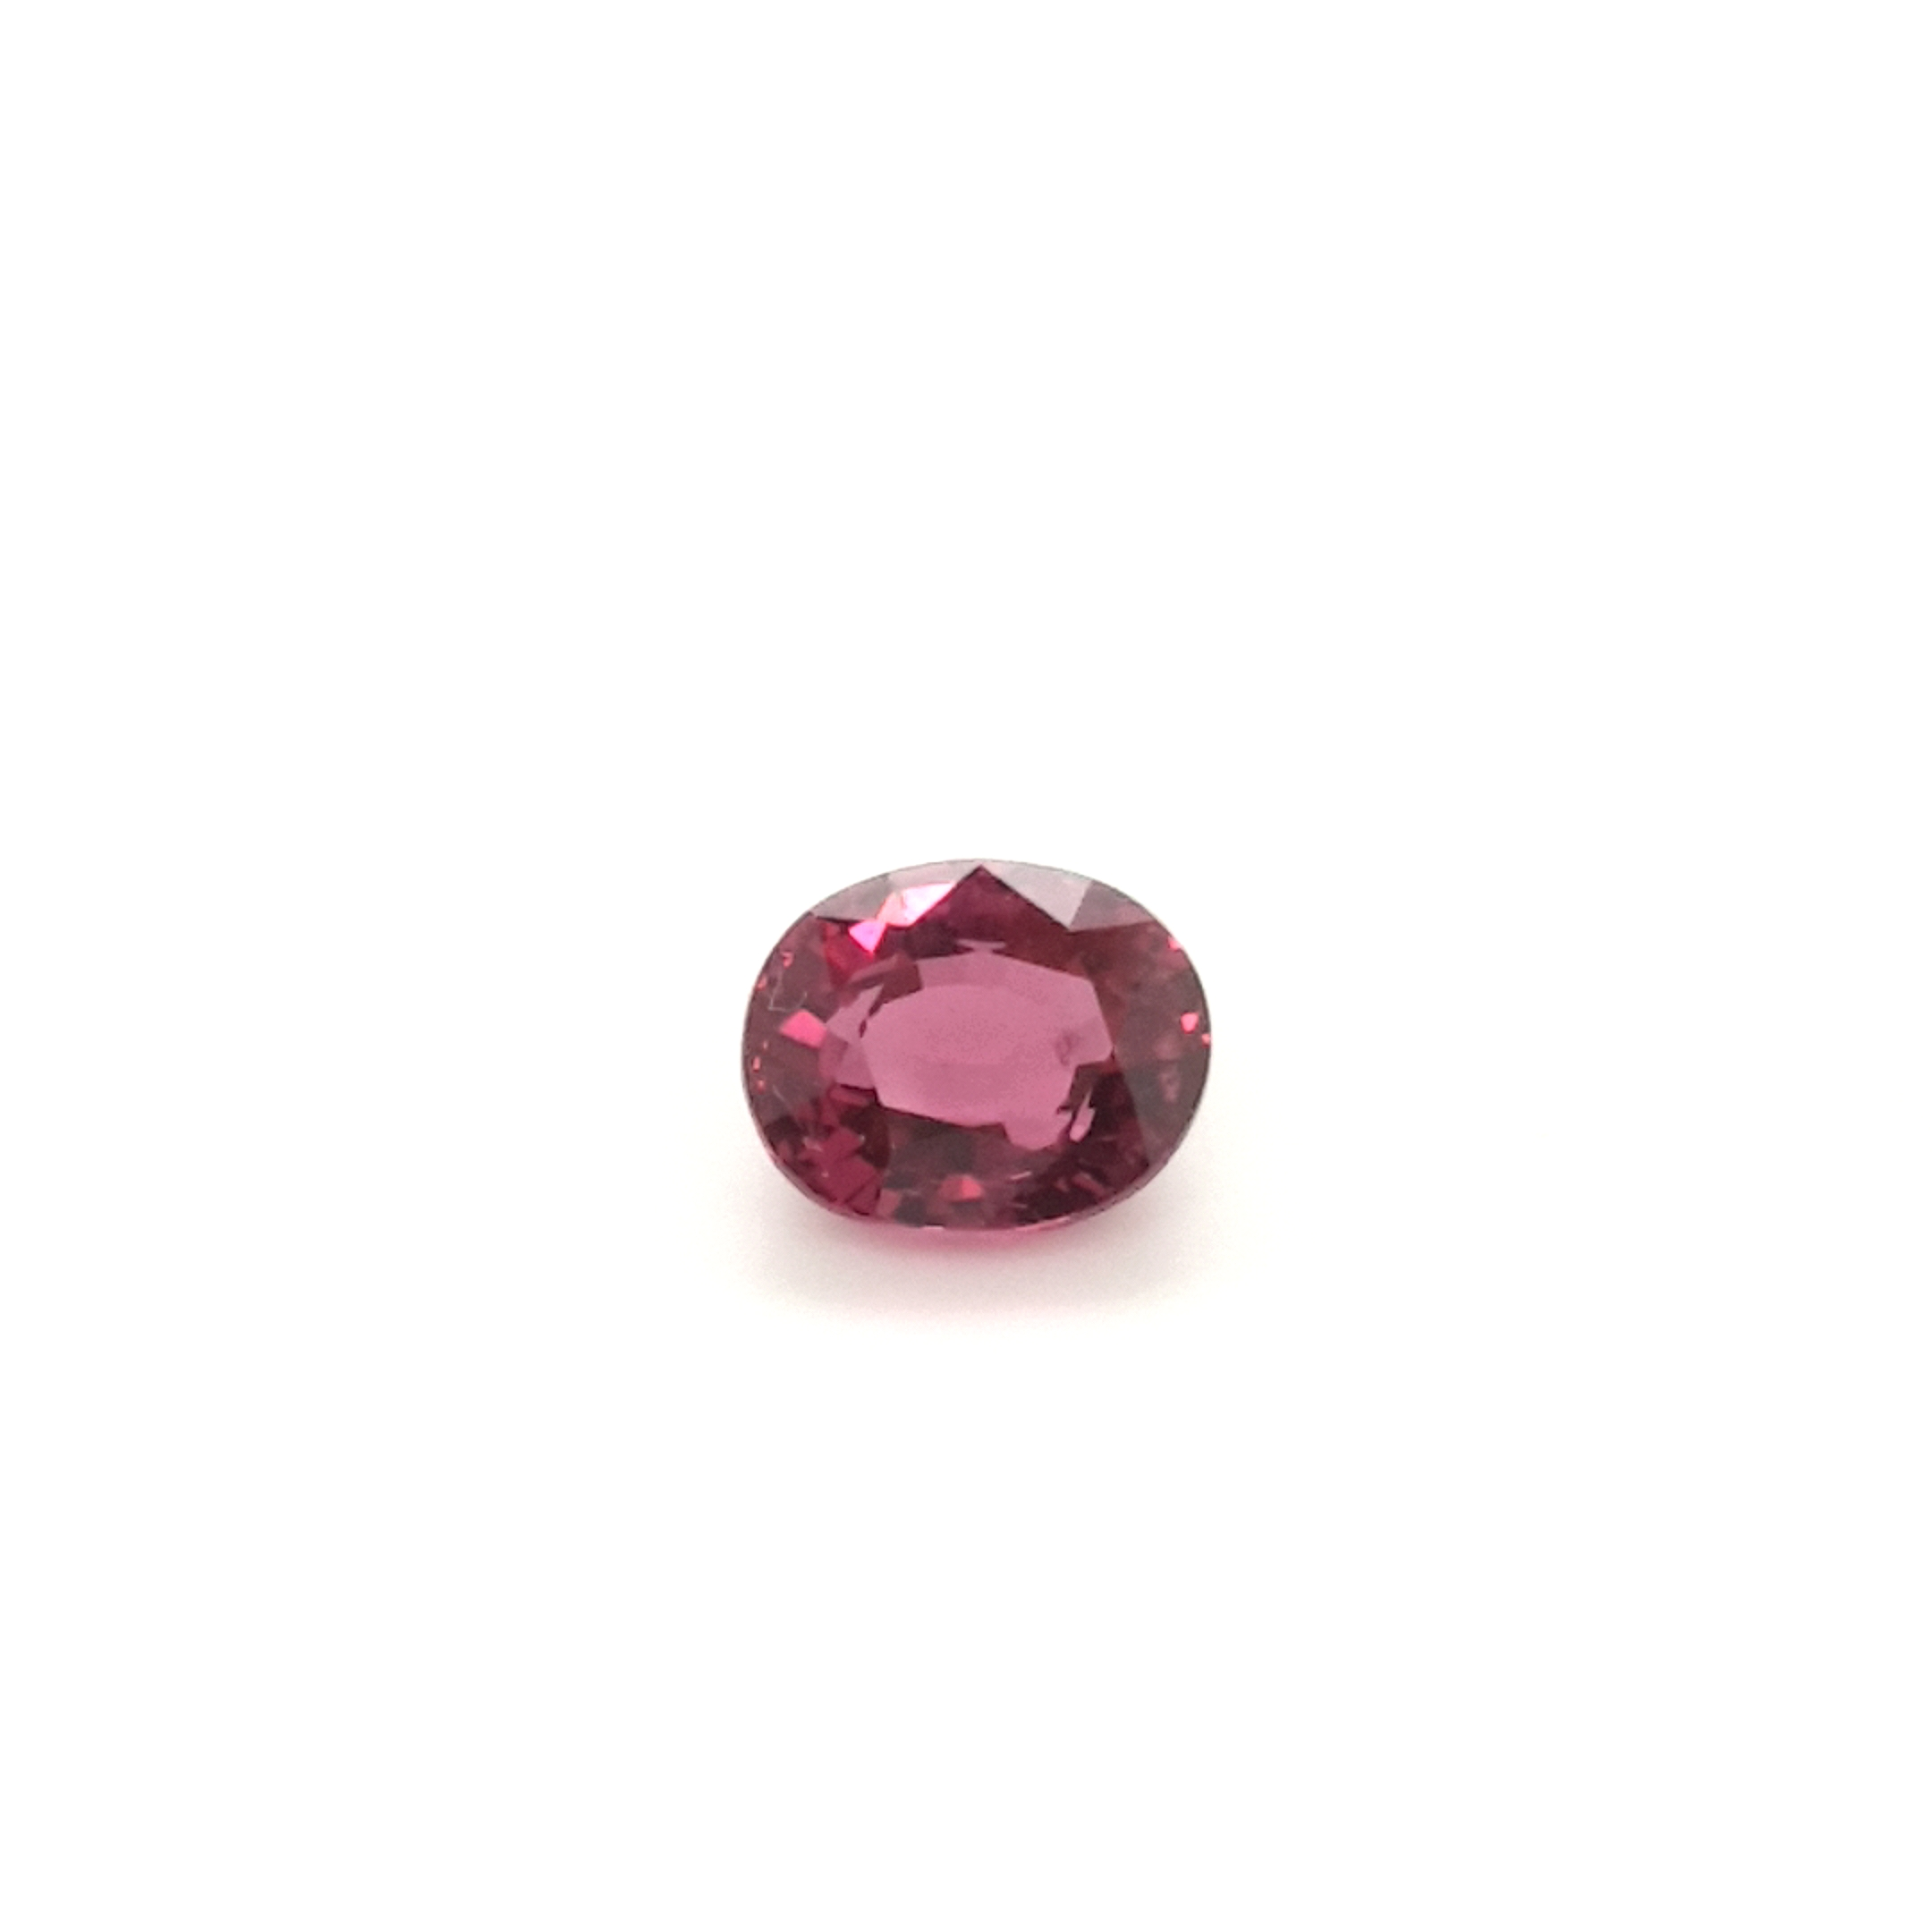 2,53ct. Red Spinel SND15C22 ClaudiaHamann